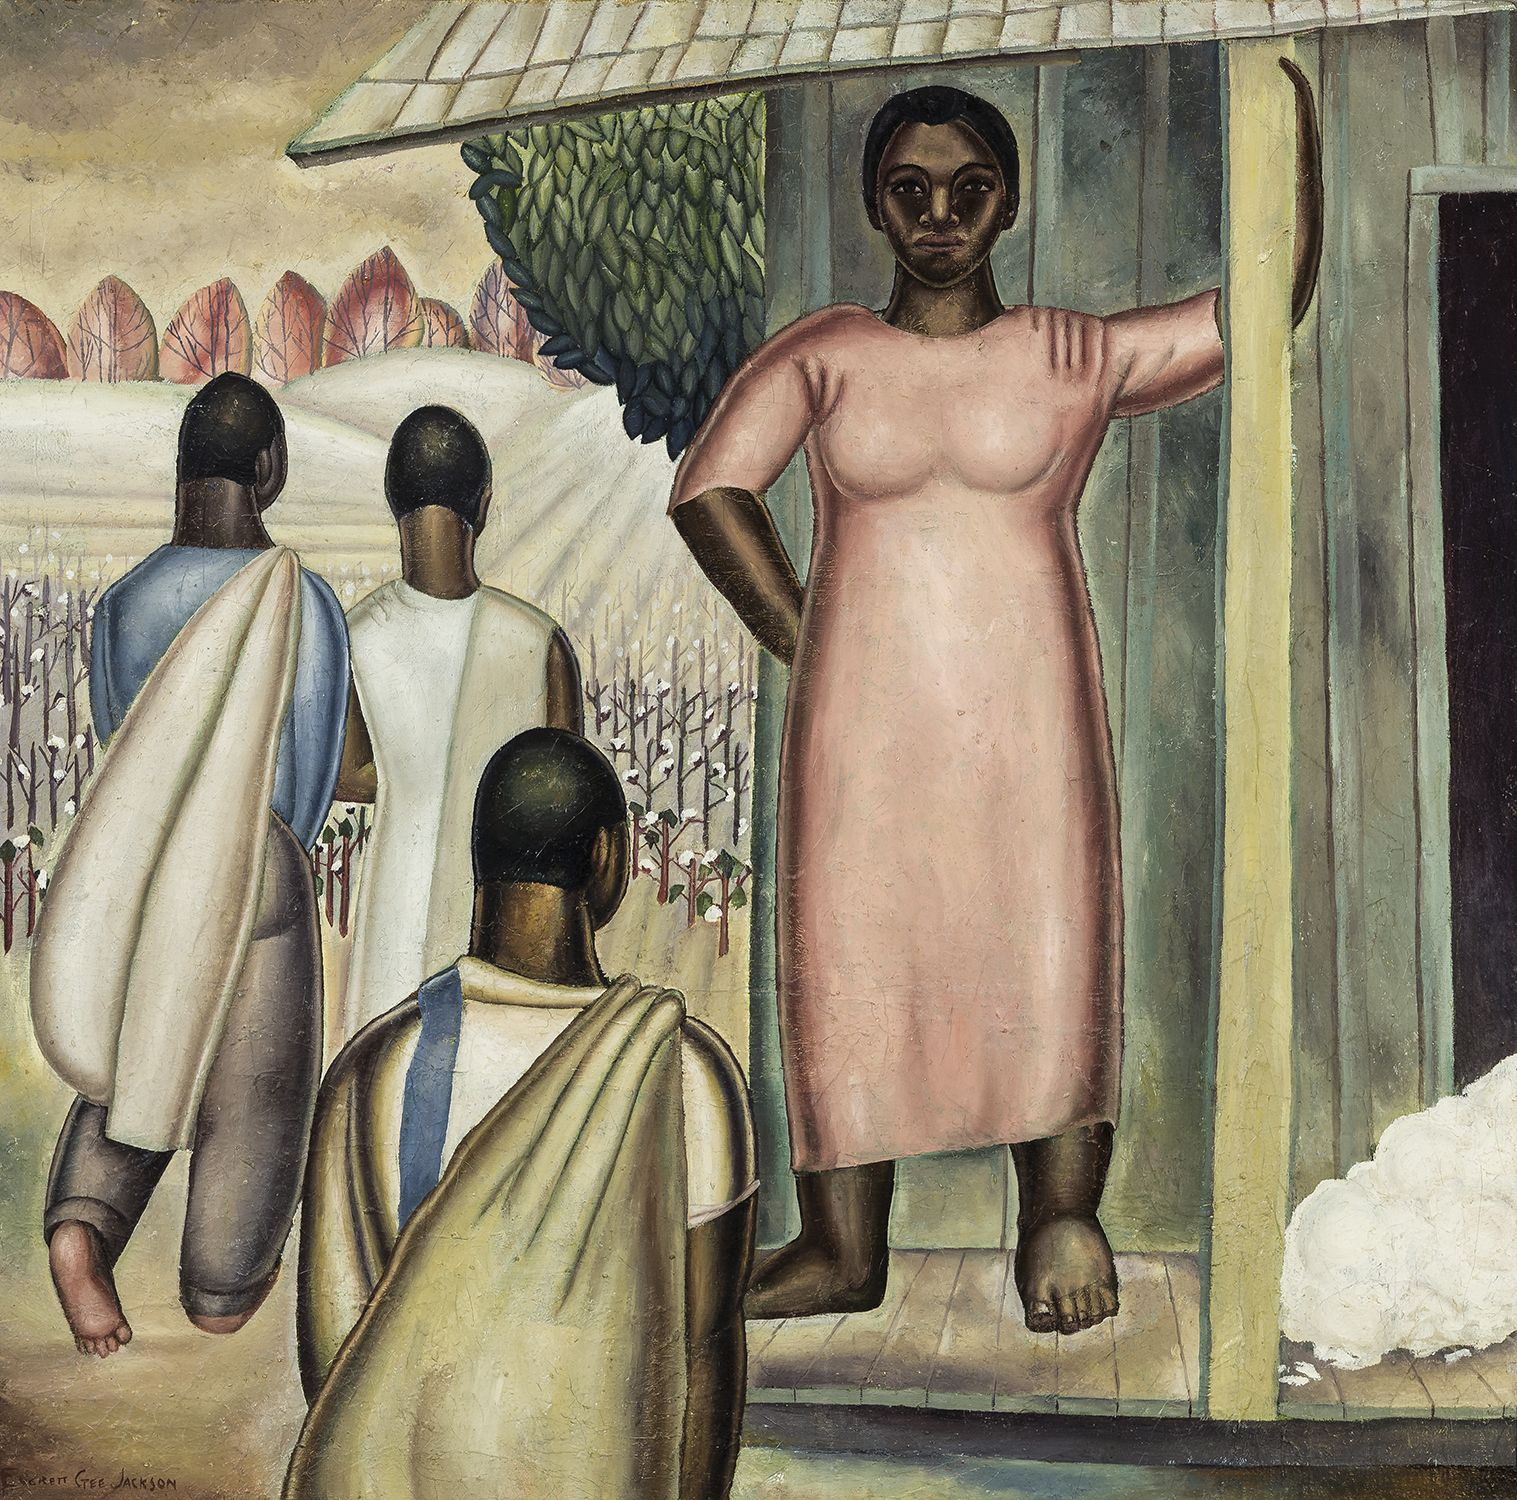 To Pick the Top Crop, 1932, Oil on canvas, 31 7/8 x 32 in.